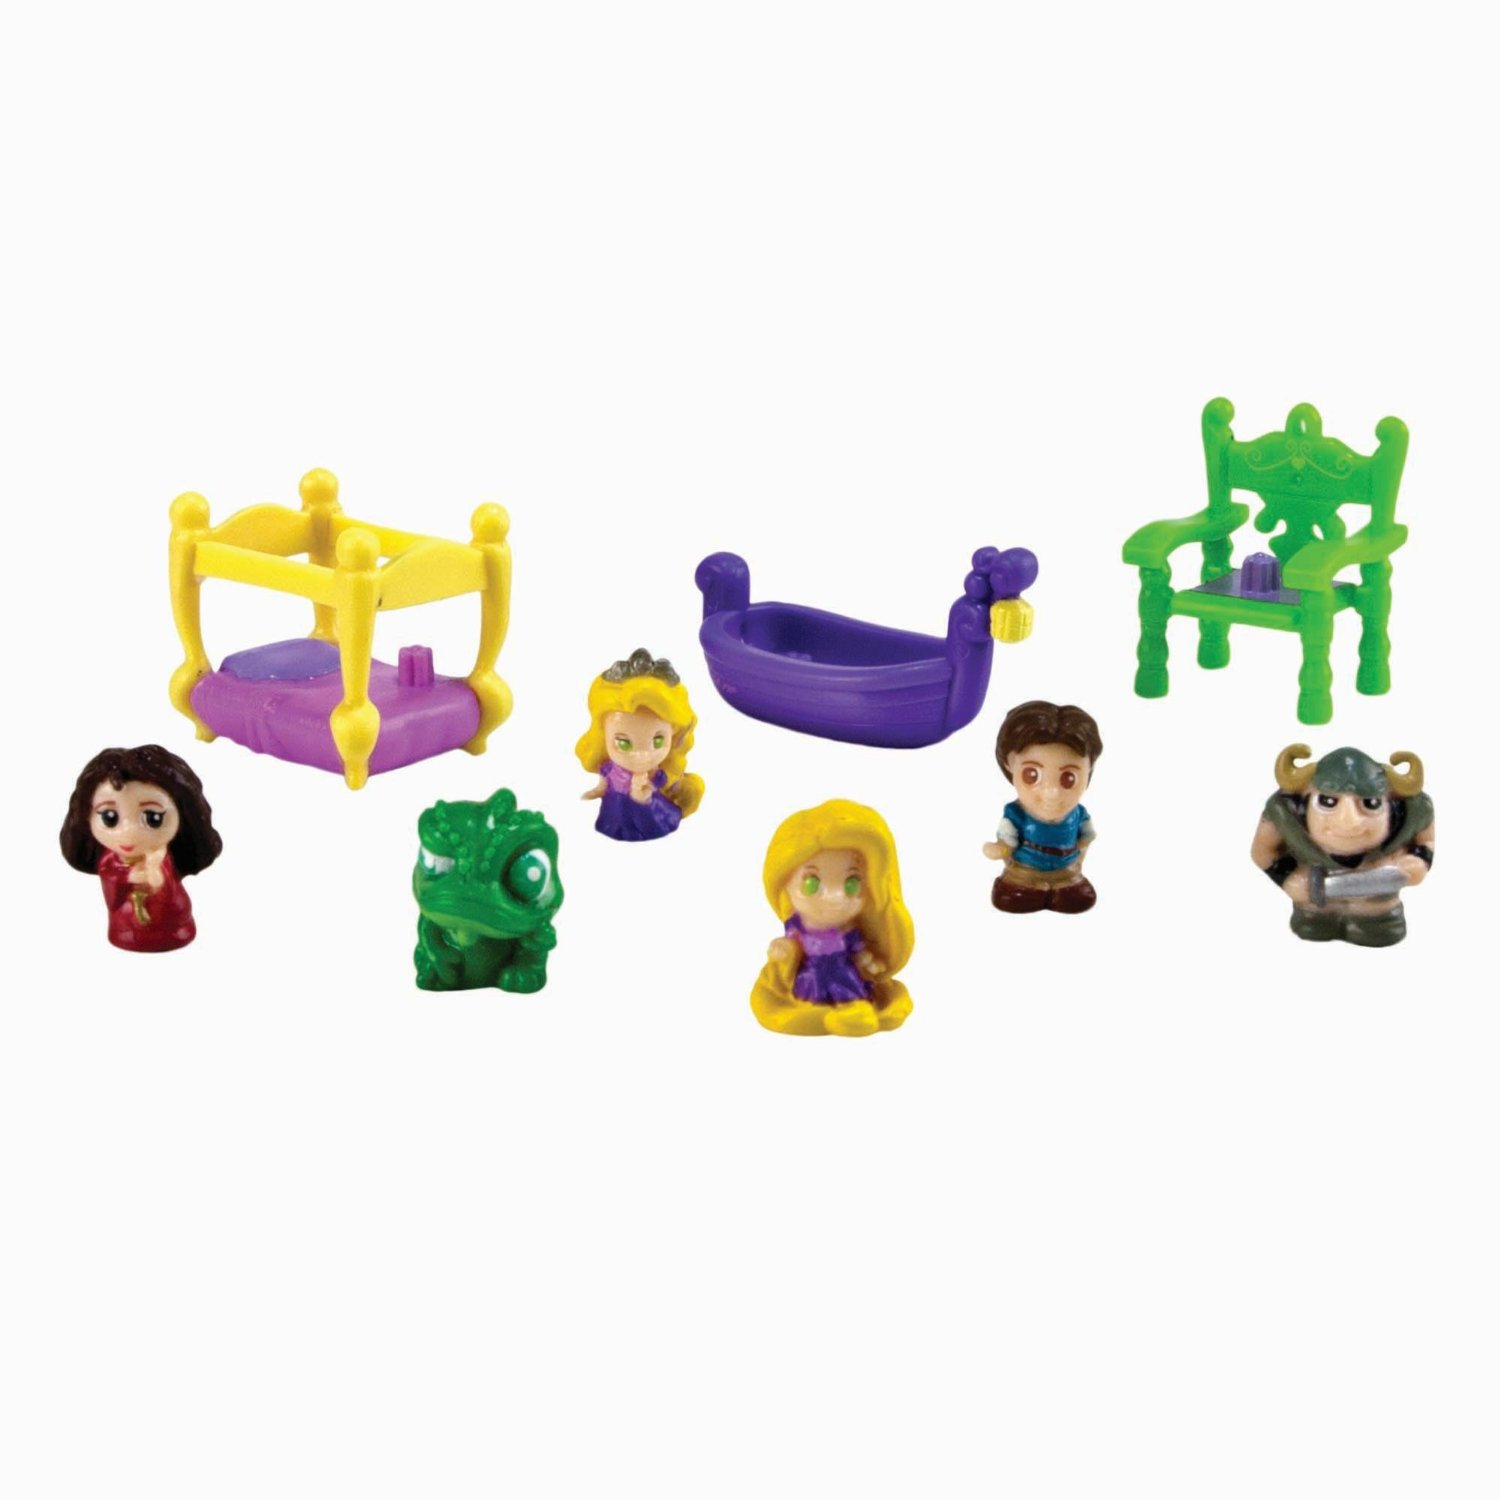 Squinkies Blip Squinkies Princess Bubble Pack - Rapunzel with Tiny Toys at Sears.com